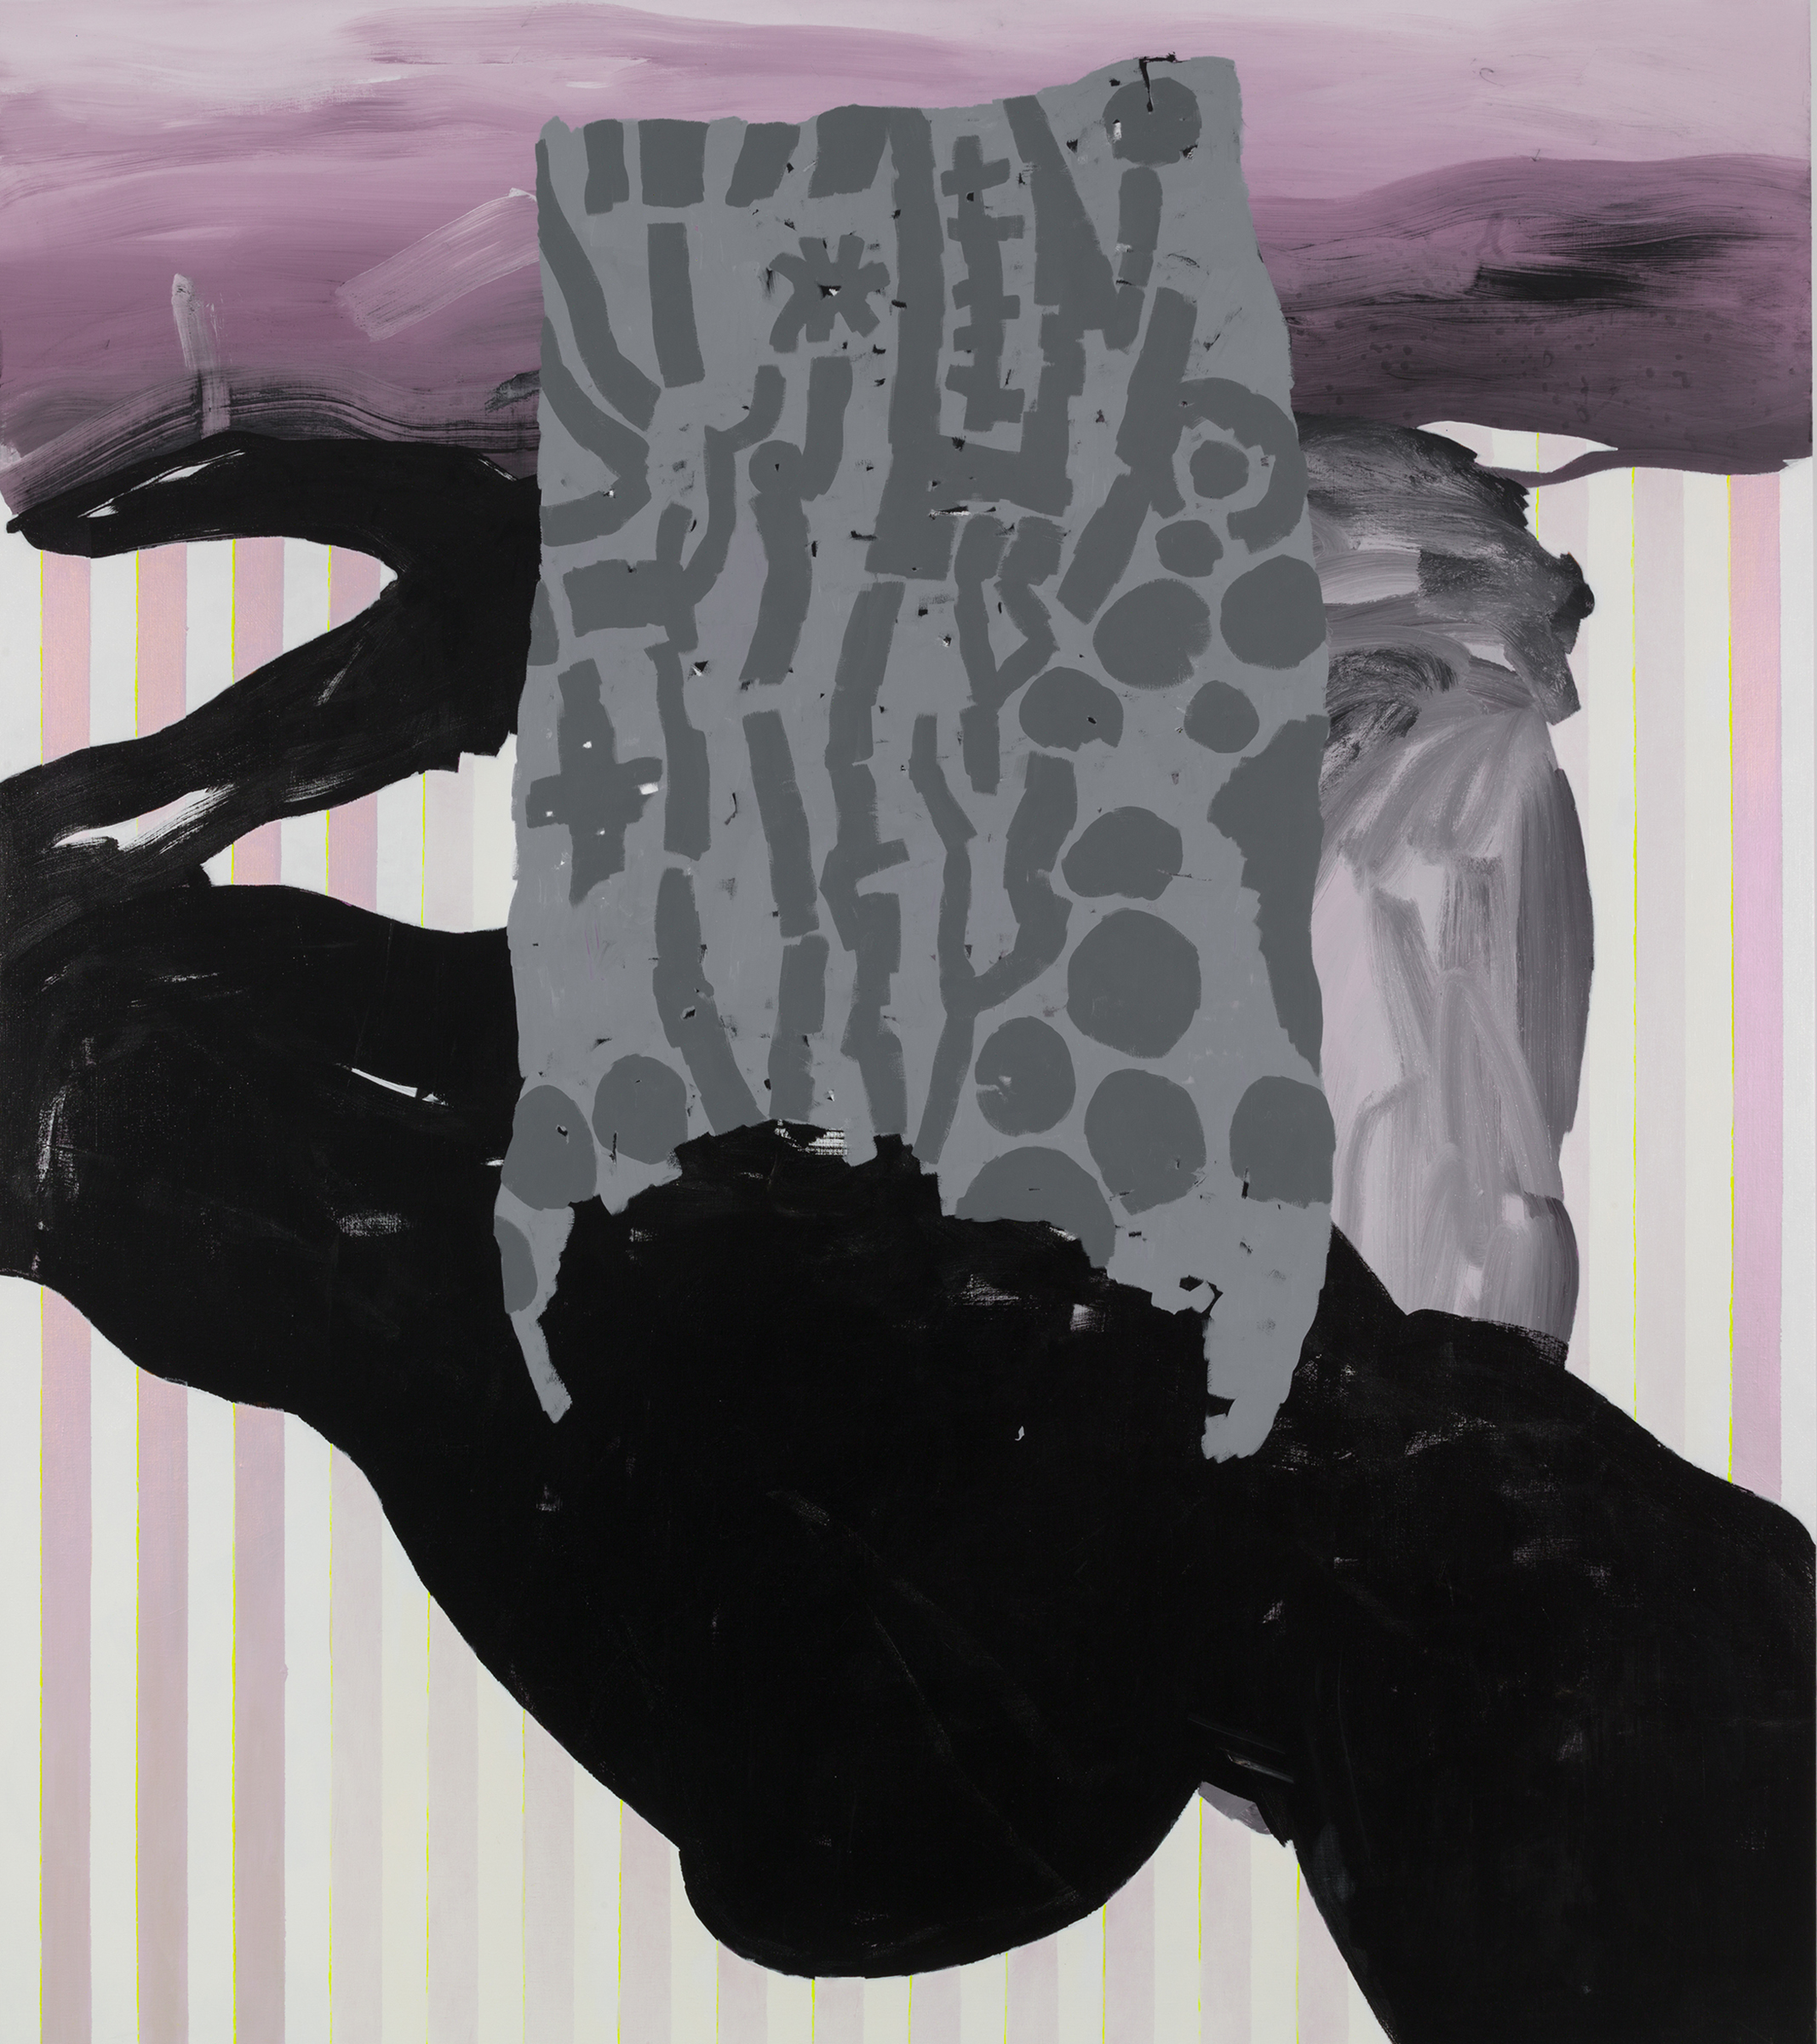 Charline von Heyl, Slow Tramp, 2012. Oil, acrylic and charcoal on canvas, 82 x 72 in. ©Charline von Heyl. Courtesy of the artist and Petzel, New York. Collection of Evan Snyderman & Zesty Meyers, R & Company New York